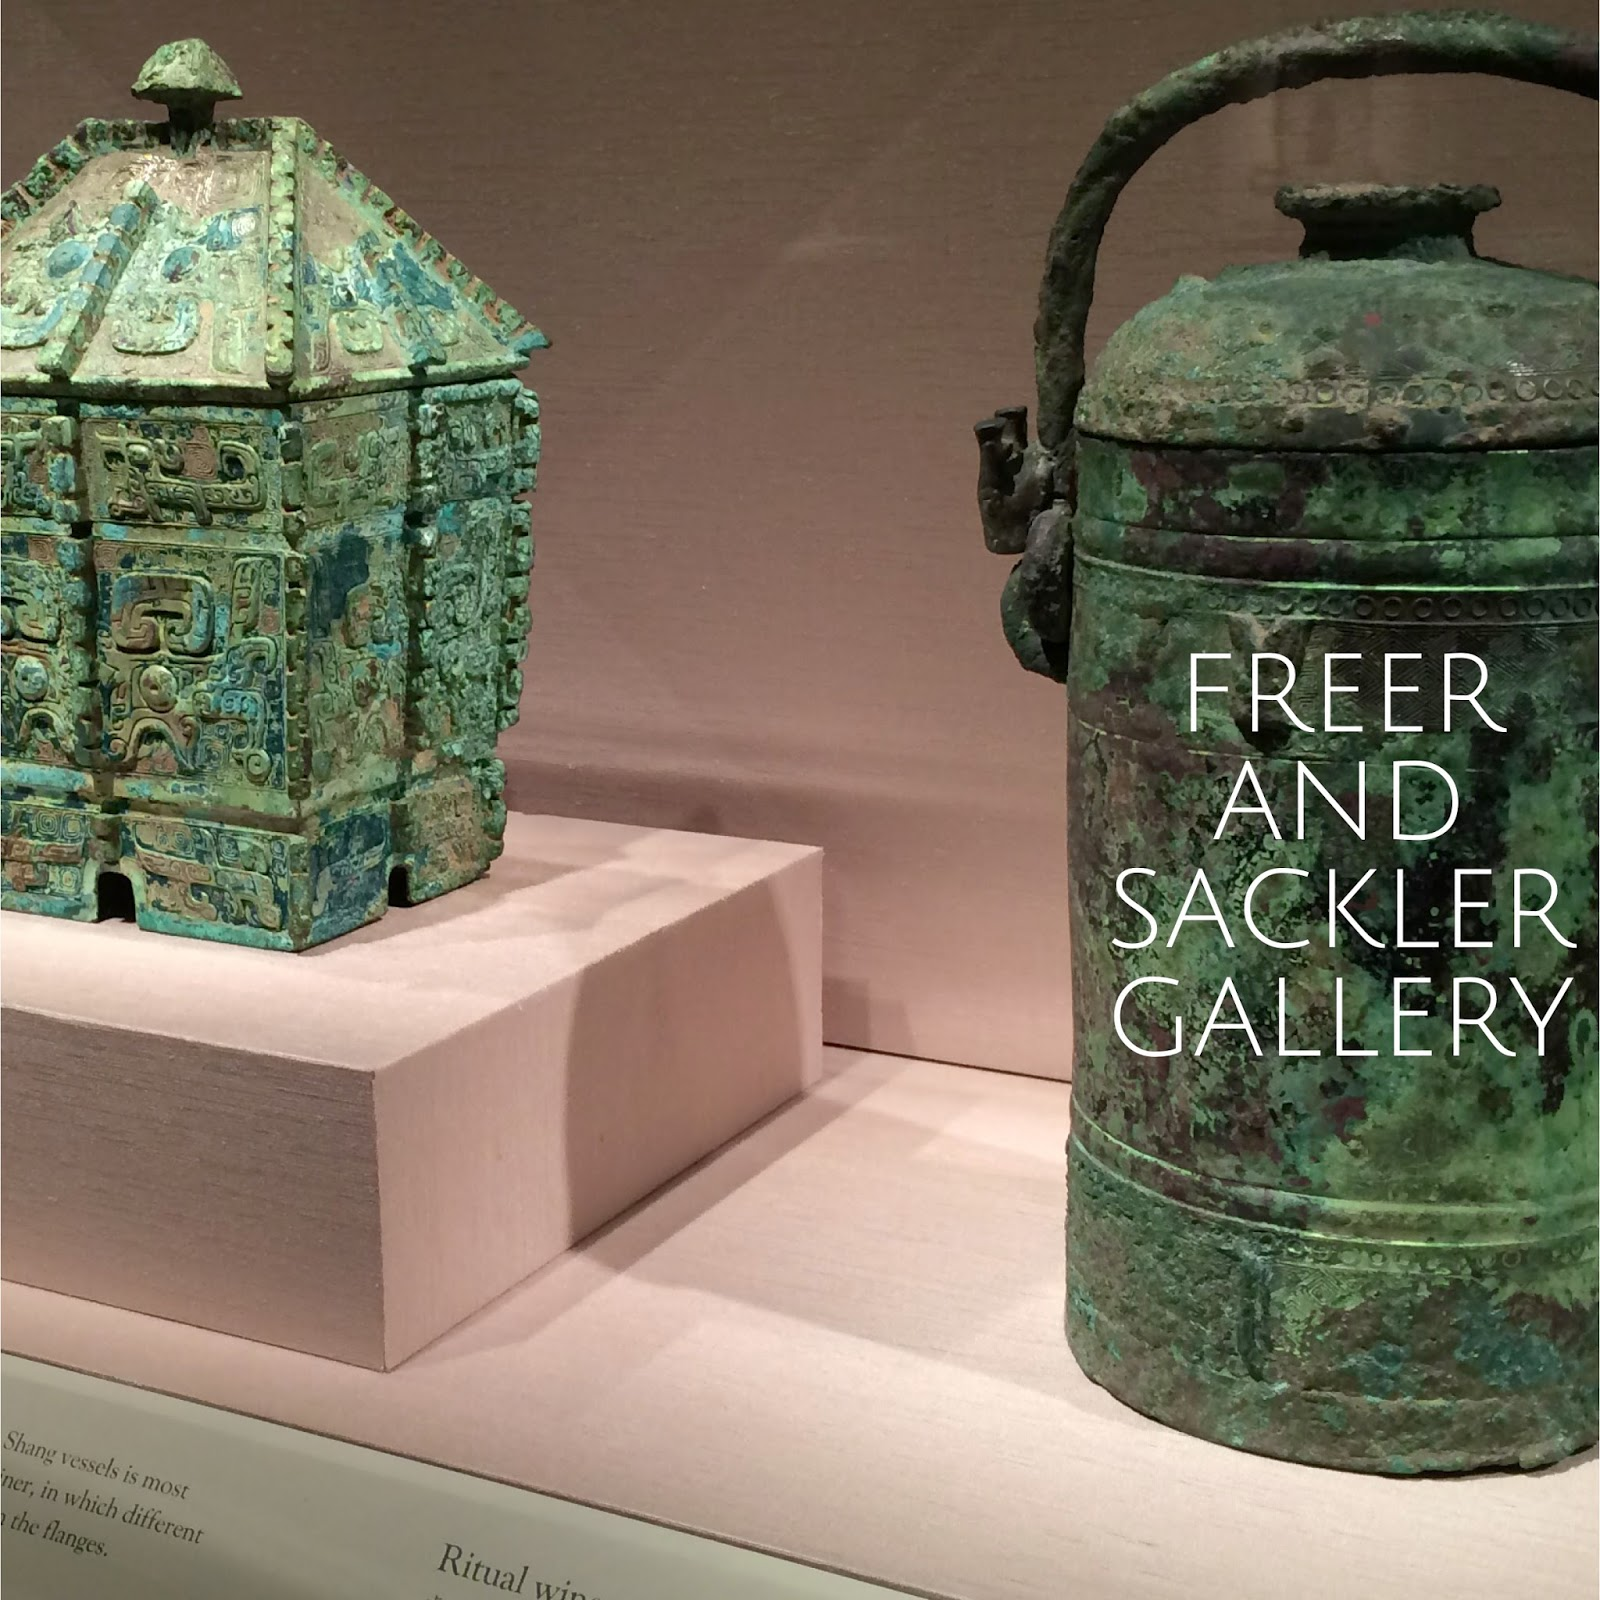 http://melthemidnightbaker.blogspot.com/2014/06/freer-and-sackler-gallery-african-art.html